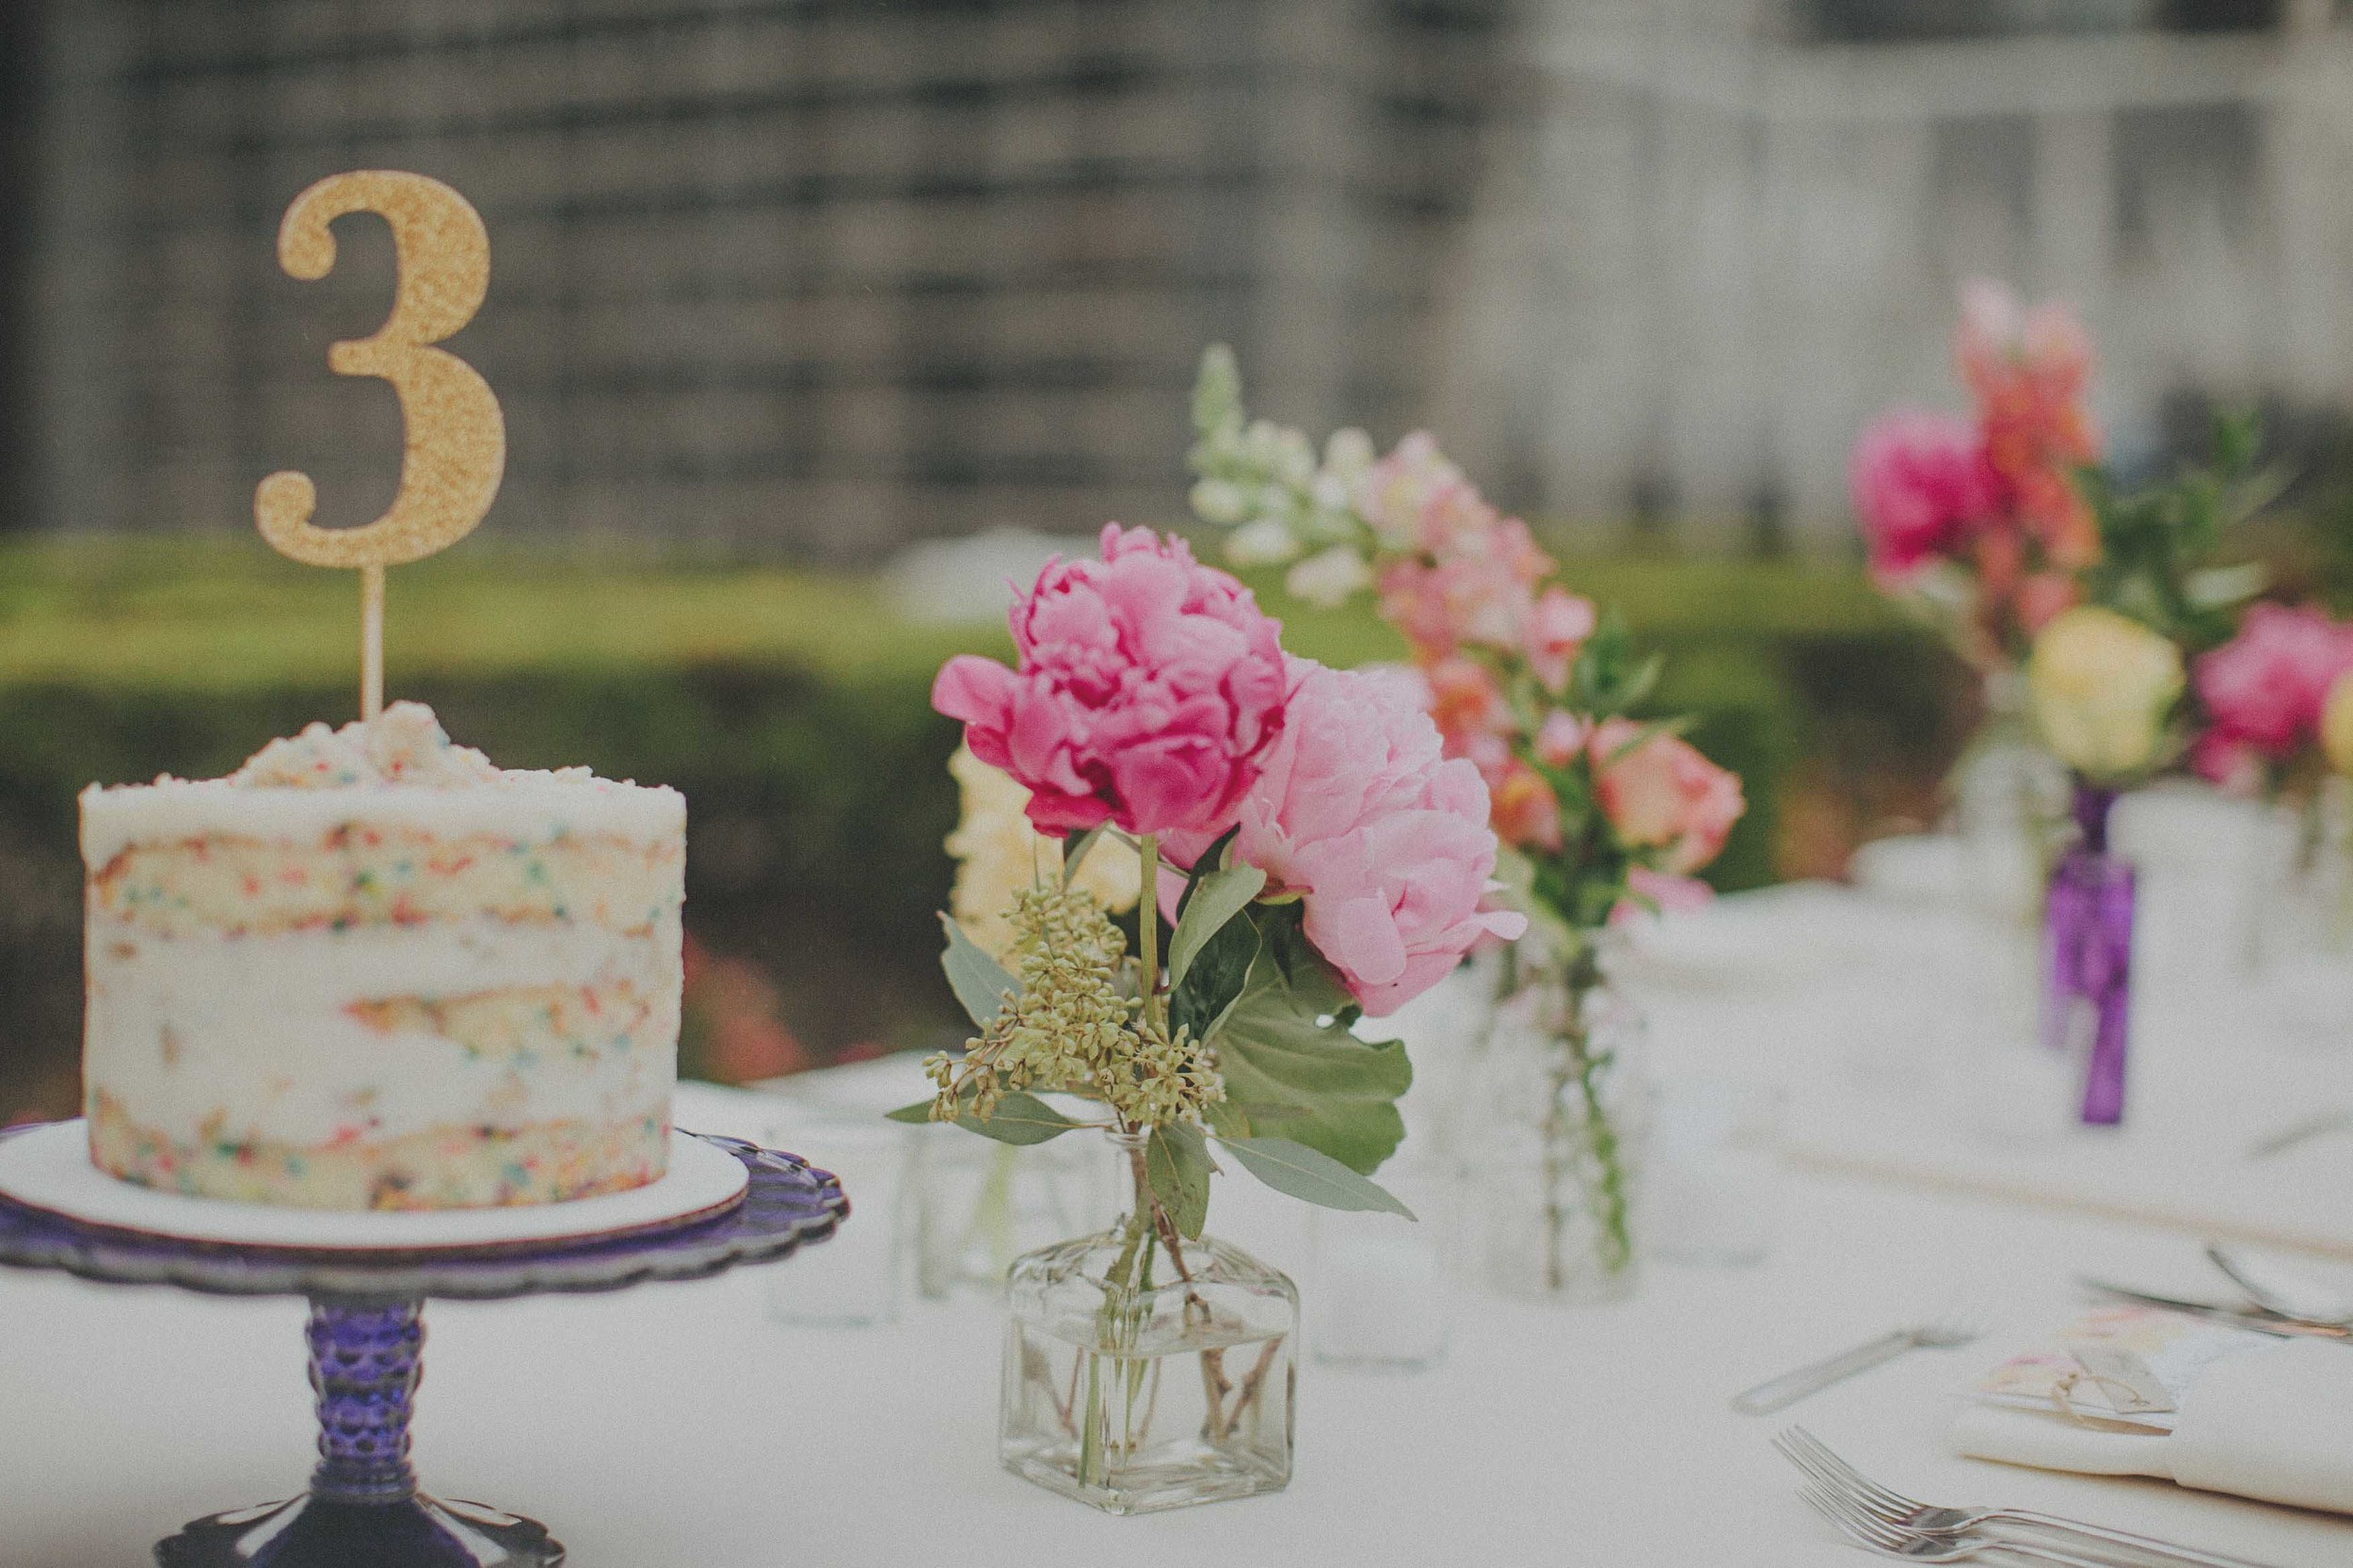 cake-centerpiece-table-number-wedding-momofuku